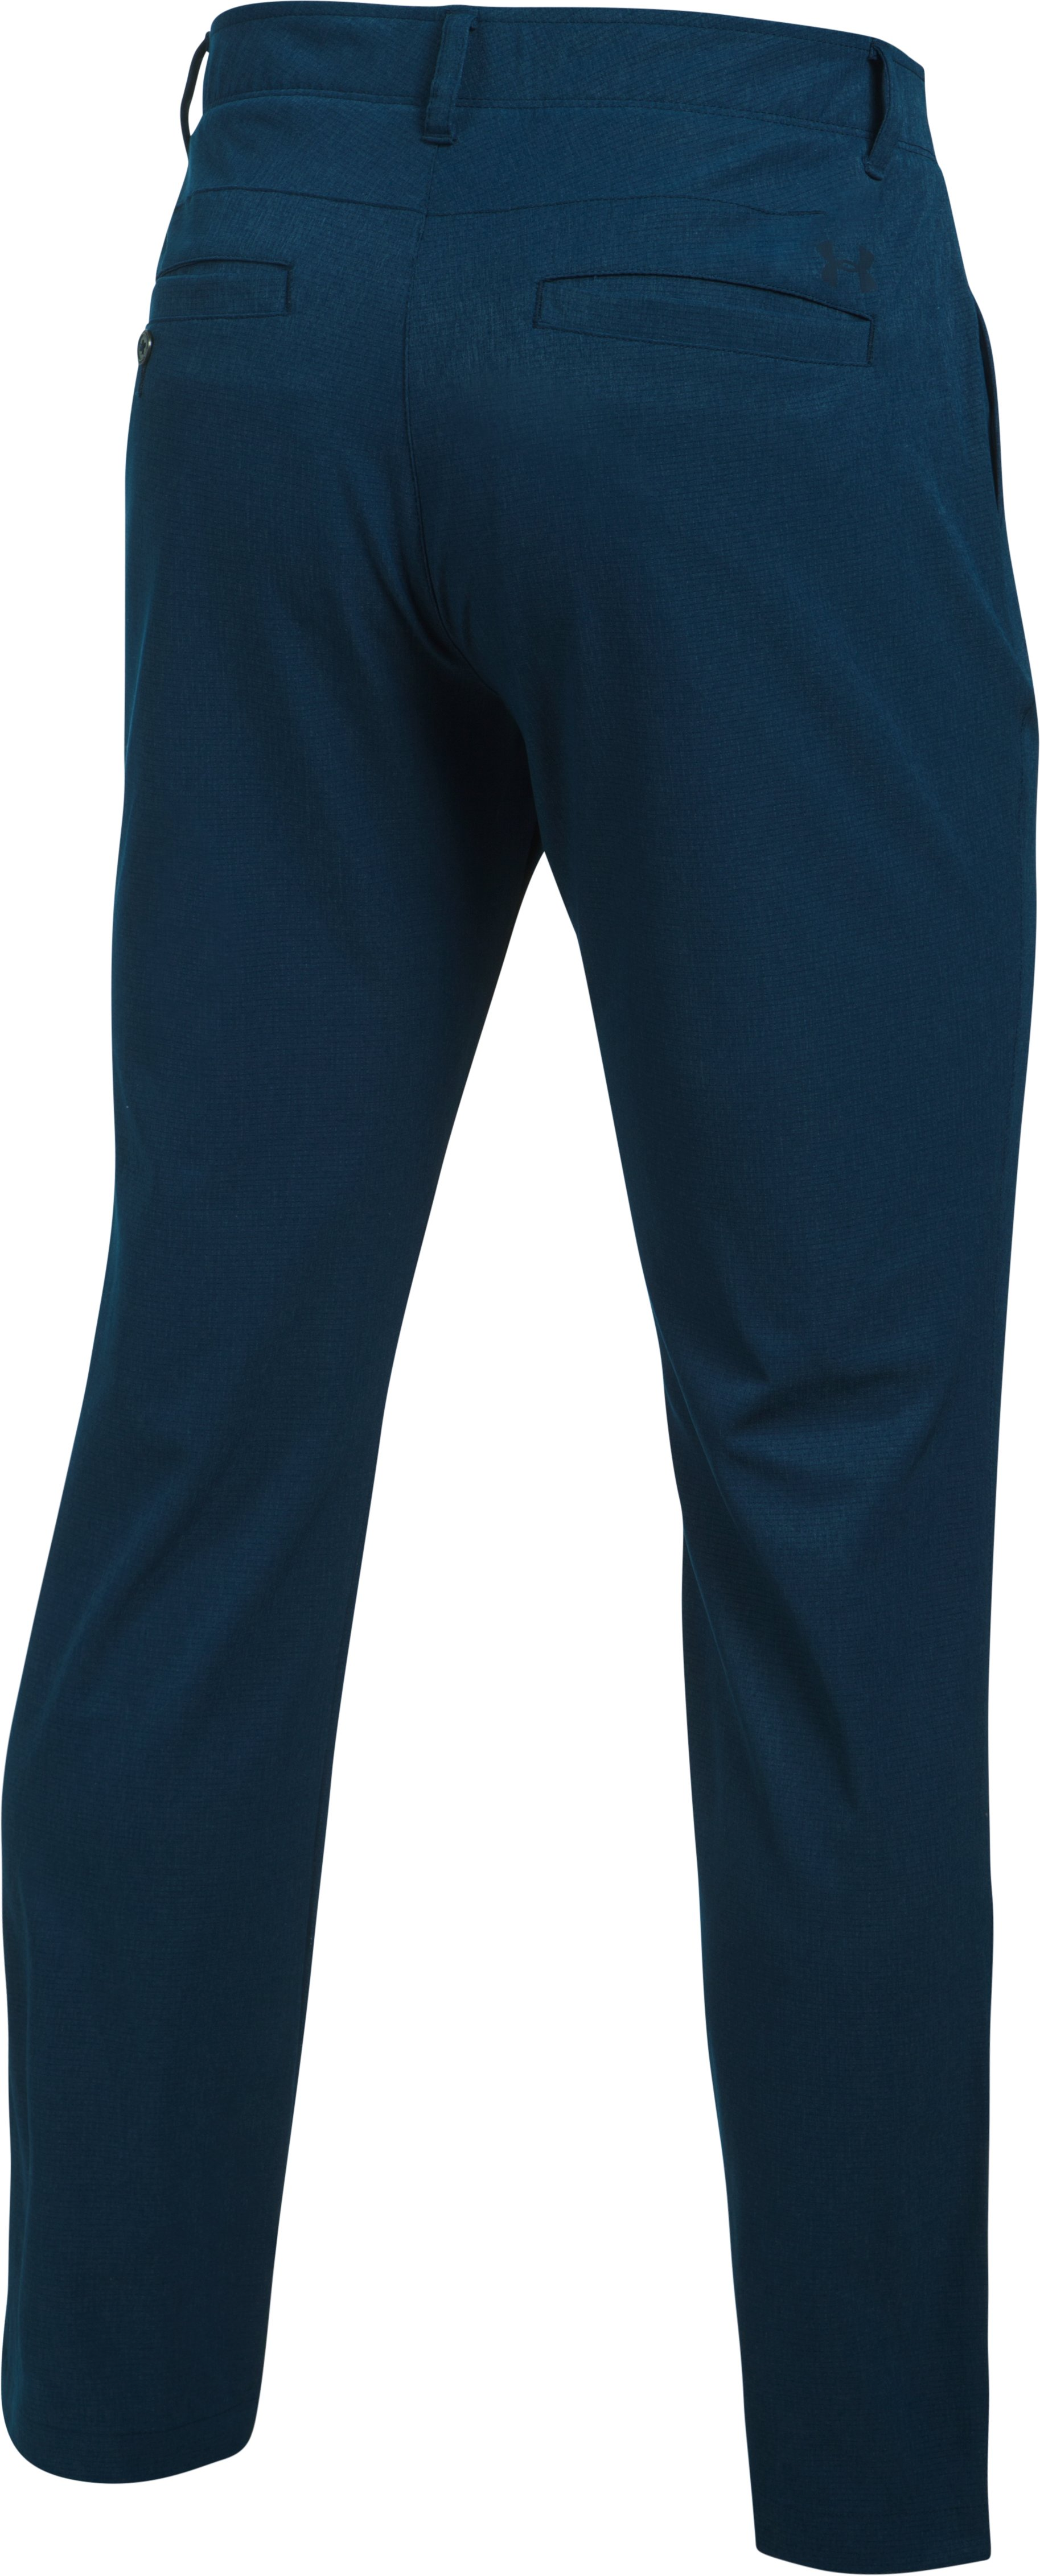 Men's UA Match Play Vented Tapered Pants, Academy, undefined